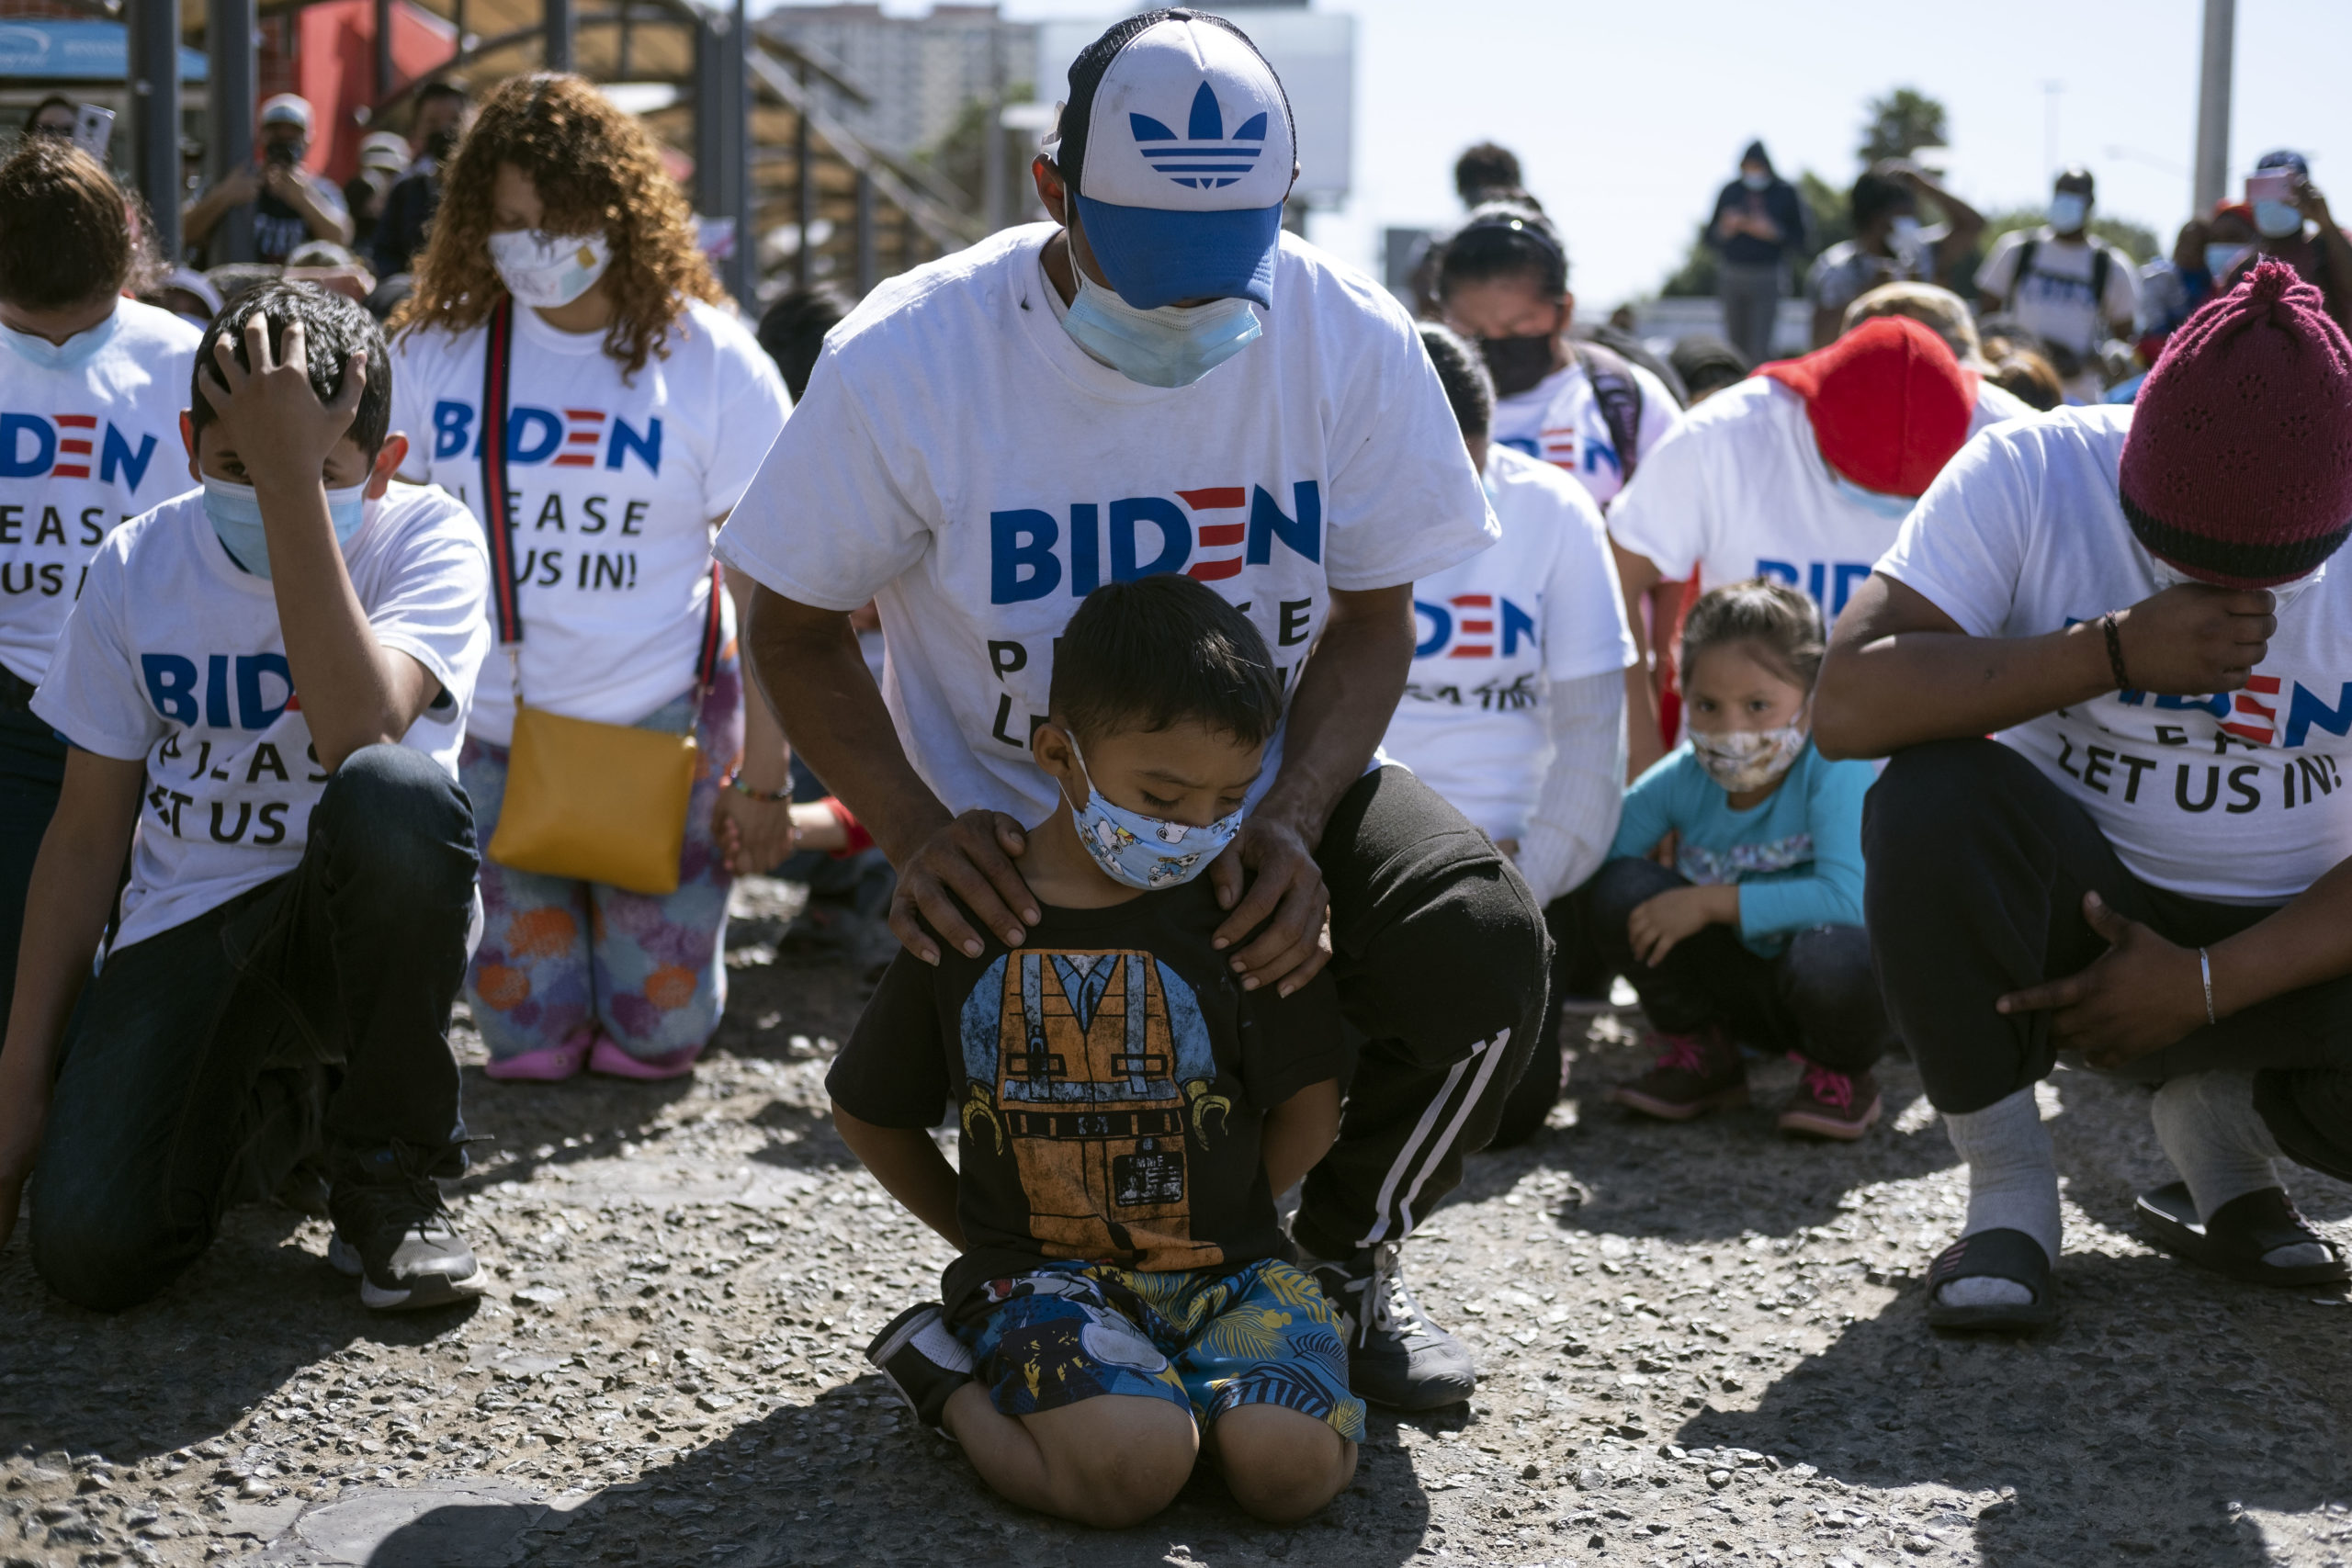 Yadiel Garcia and his father Fabricio, from Honduras, kneel as they pray during a migrant demonstration demanding clearer United States migration policies, at San Ysidro crossing port in Tijuana, Baja California state, Mexico on March 2, 2021. - Thousands of migrants out of the Migrant Protection Protocol (MPP) program are stranded along the US-Mexico border without knowing when or how they will be able to start their migratory process with US authorities. (Photo by Guillermo Arias / AFP) (Photo by GUILLERMO ARIAS/AFP via Getty Images)